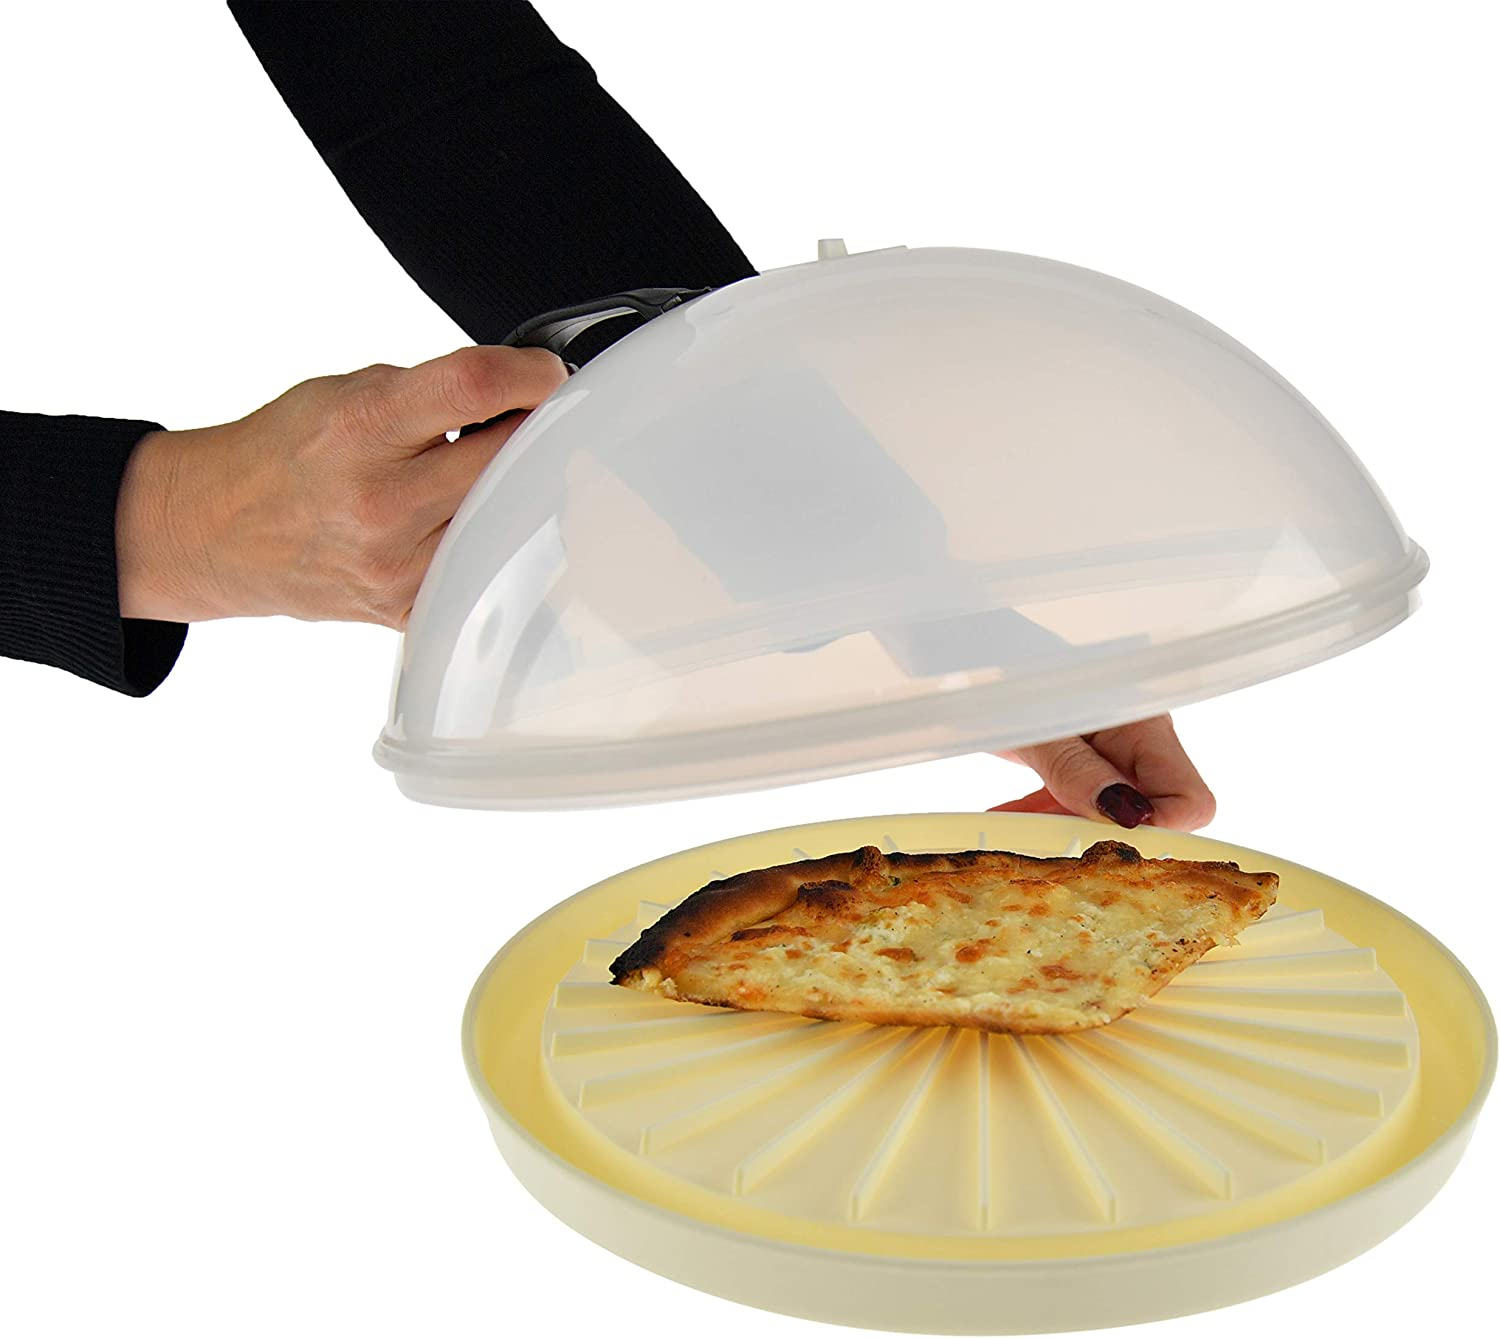 HOME-X Reusable Microwave Plate with Dome Lid Cover